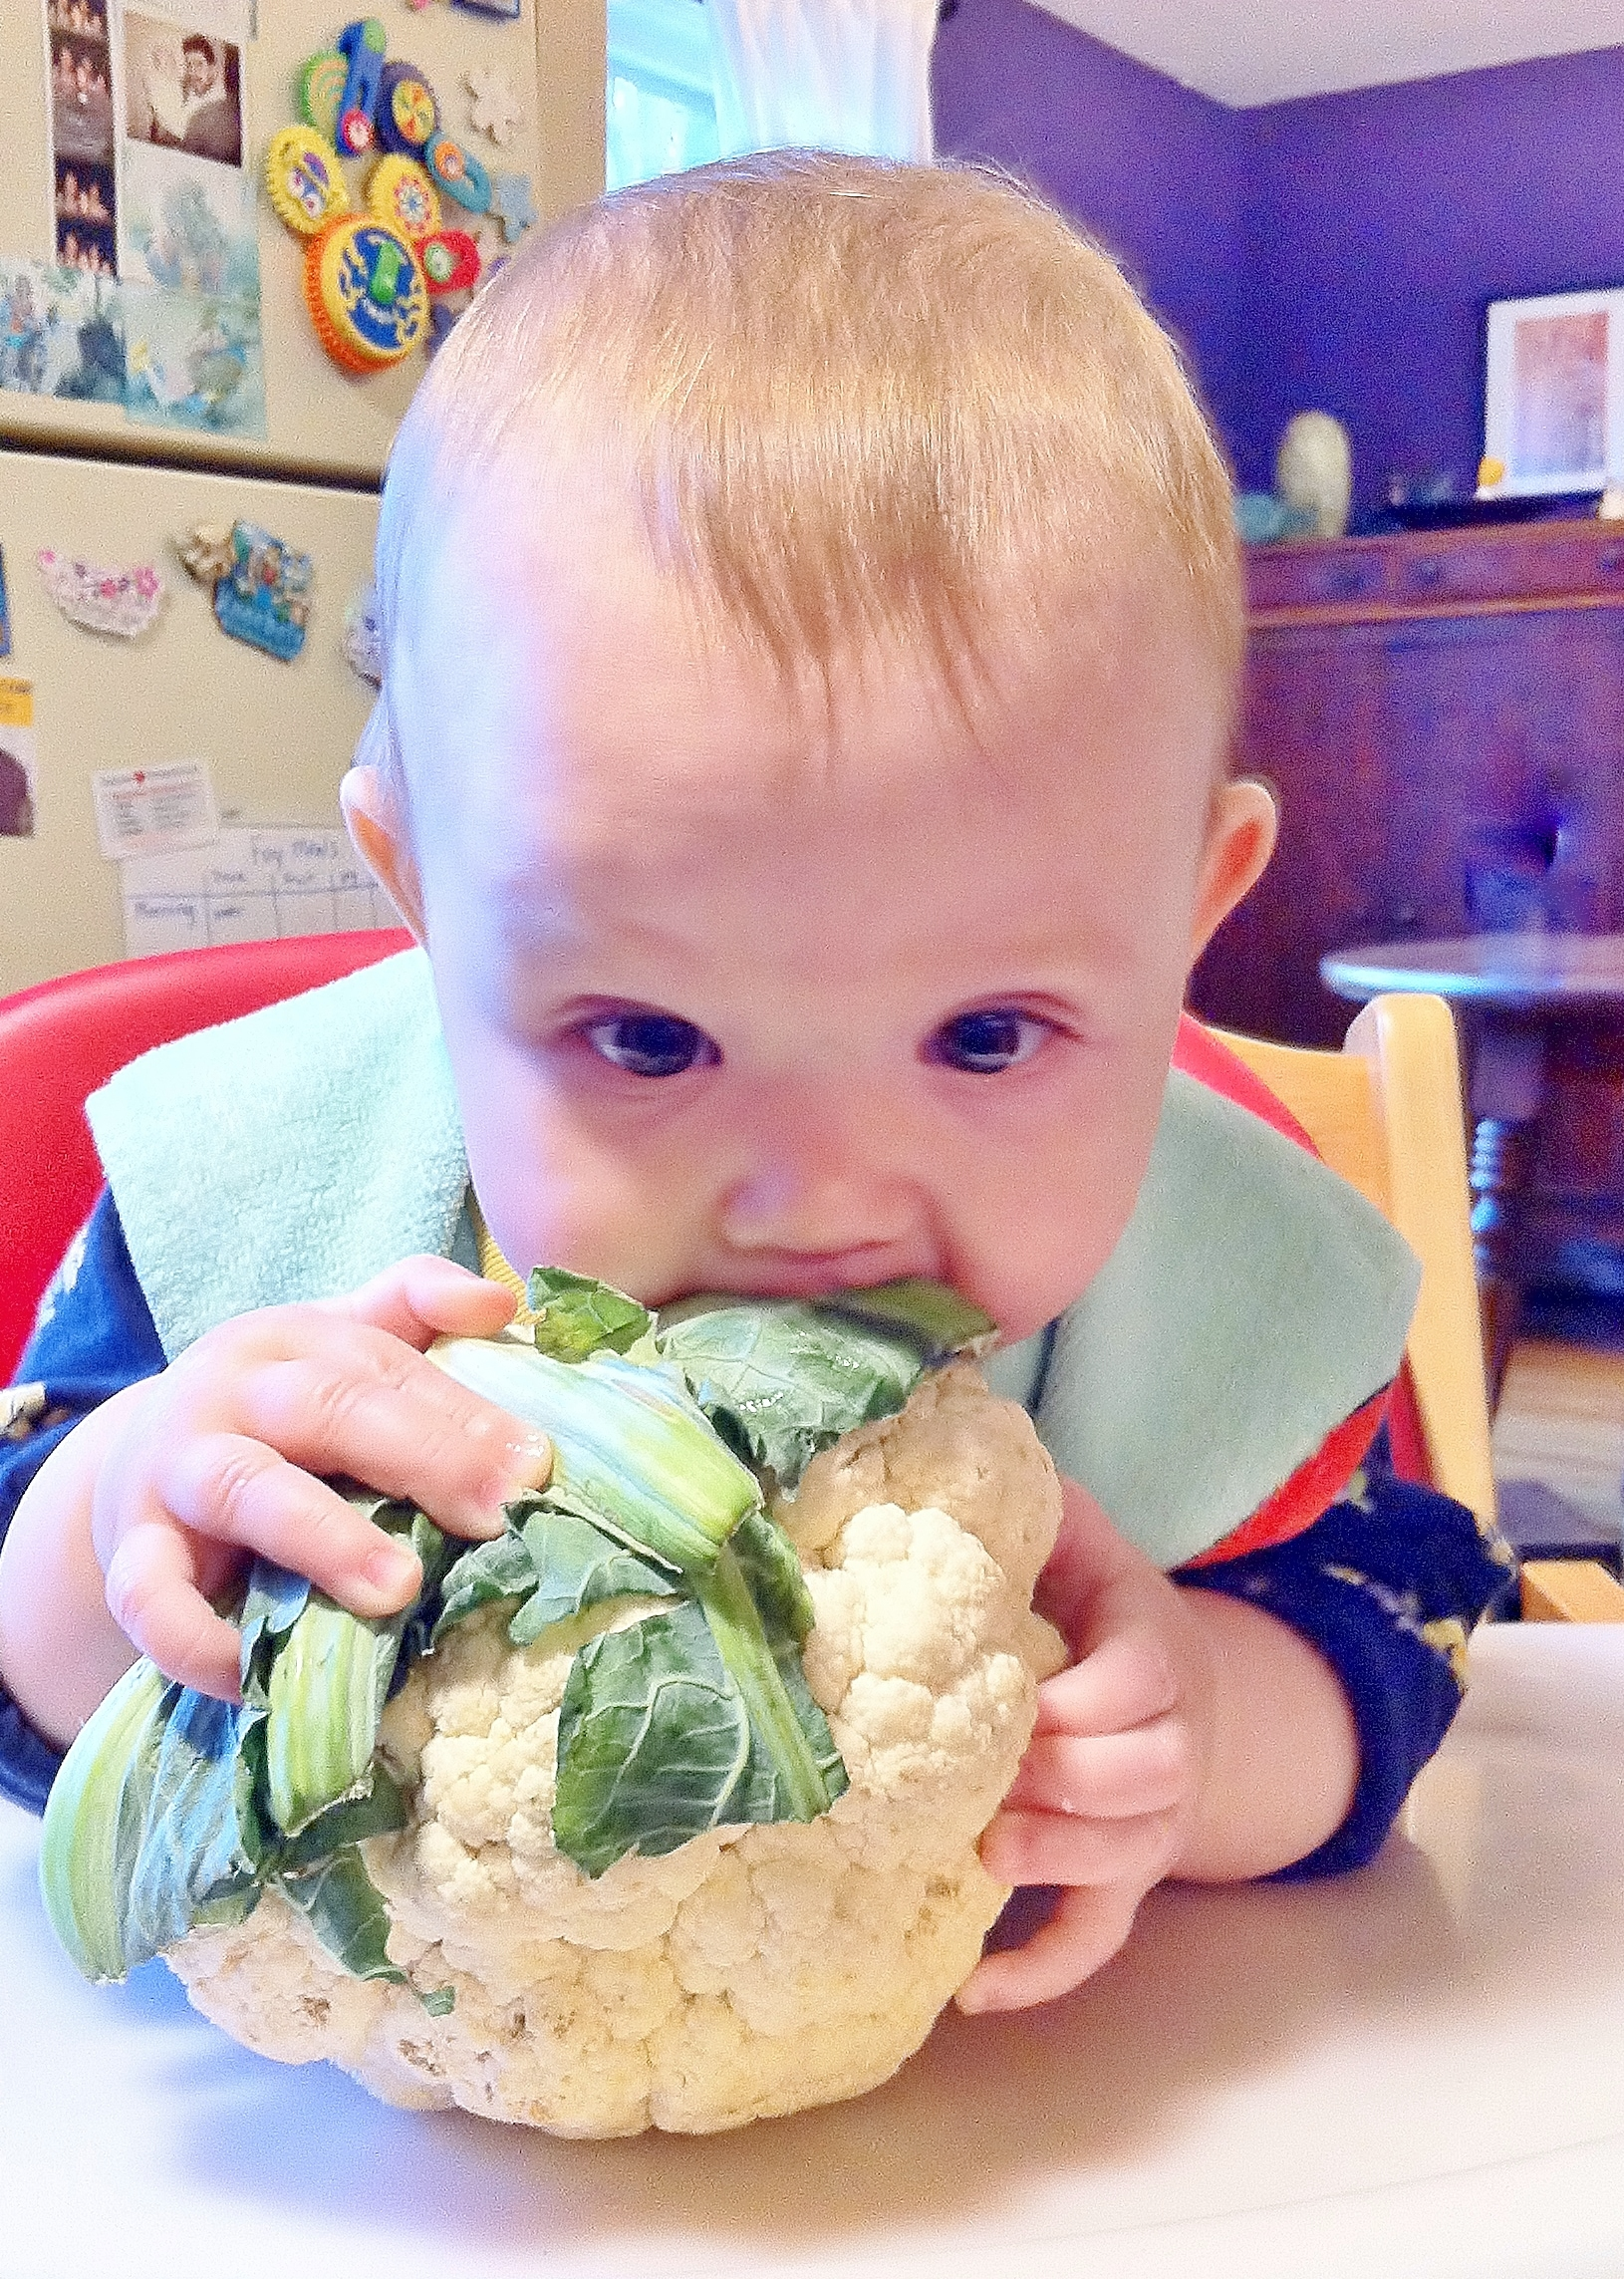 When is the Best Time to Start My Baby on Foods Other Than Breastmilk? |  Breastfeeding USA